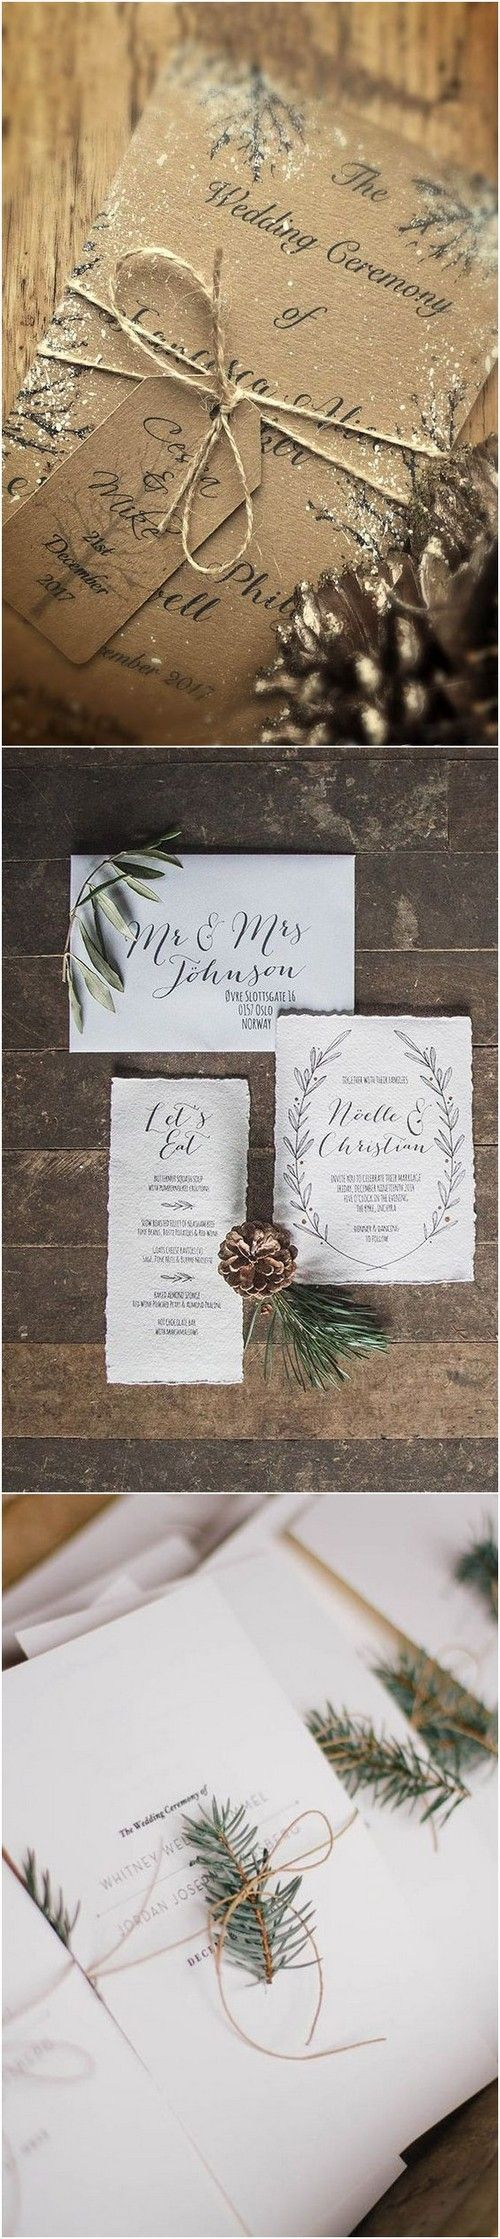 99 Best Fall And Winter Weddings Images On Pinterest Wedding Ideas